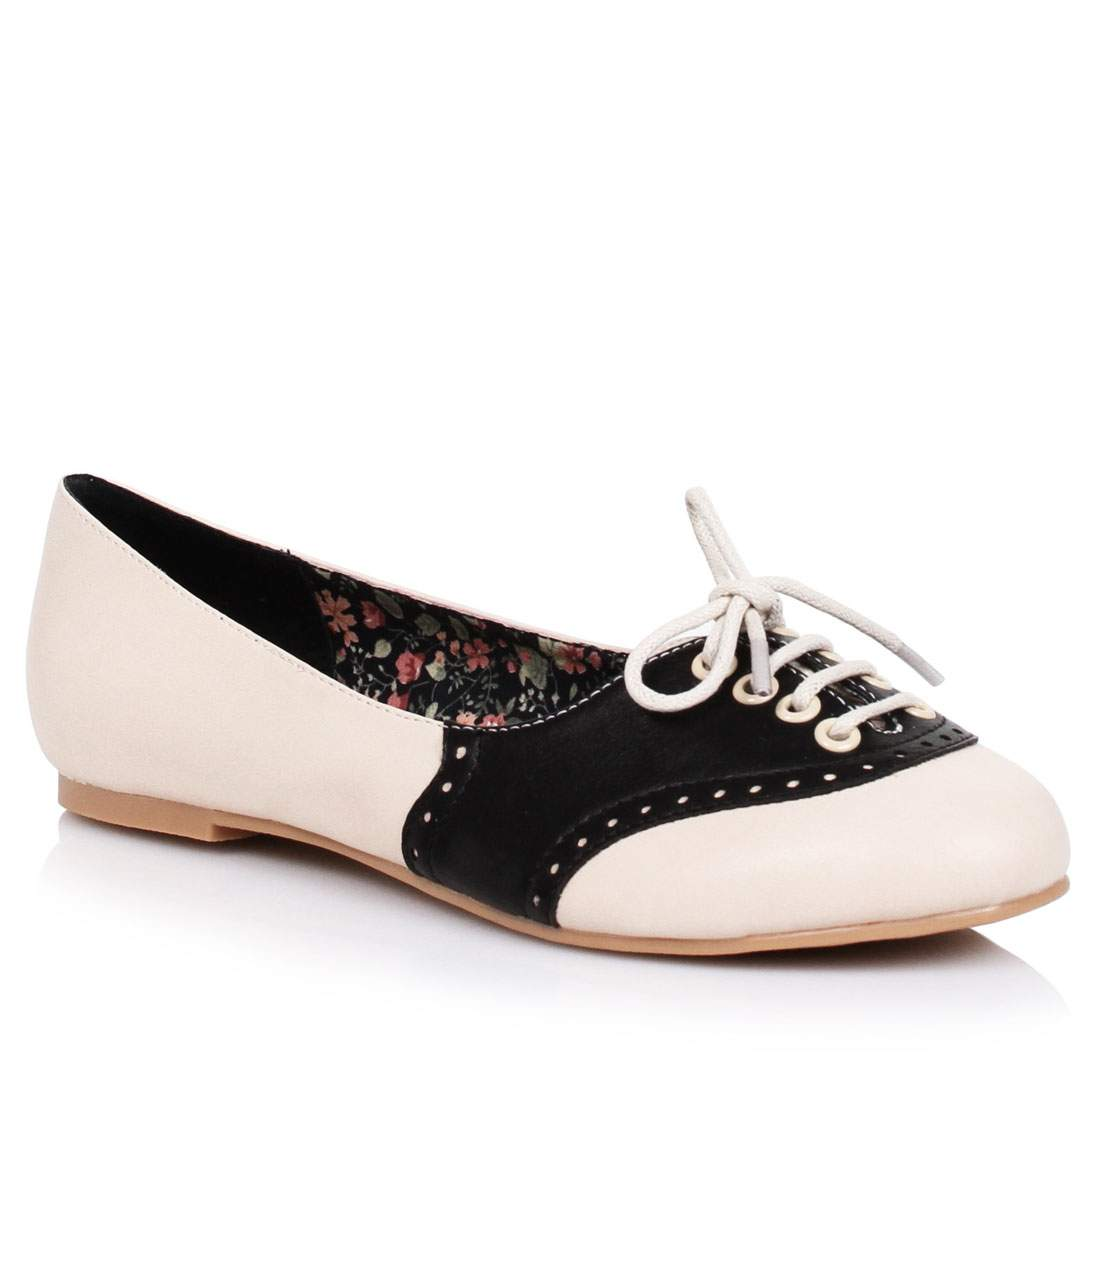 Retro Vintage Flats and Low Heel Shoes Cream  Black Retro Halle Oxford Saddle Shoes $68.00 AT vintagedancer.com